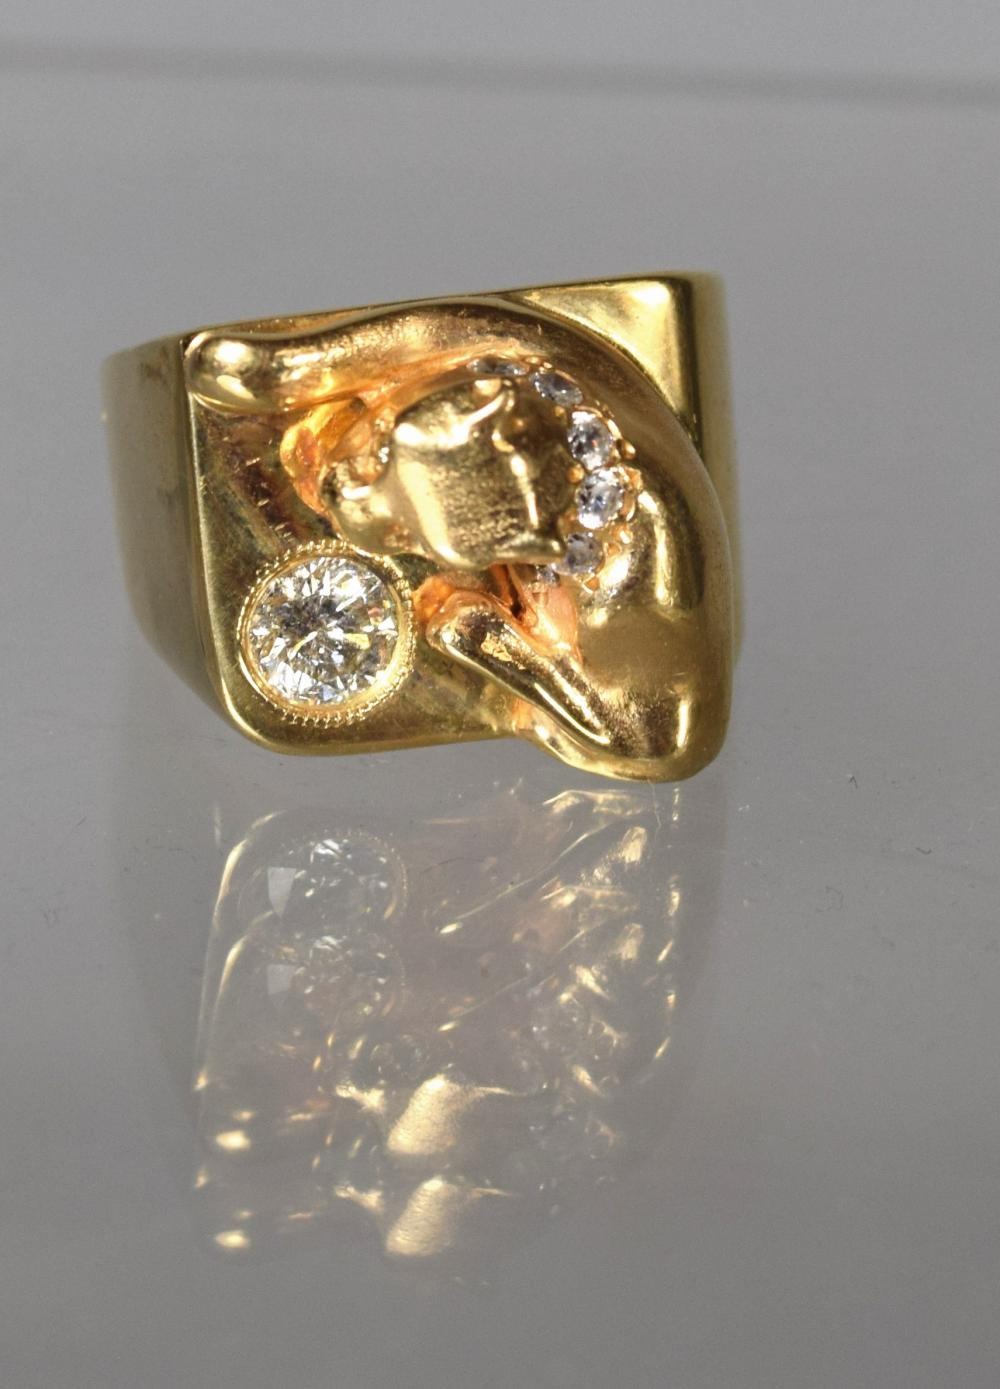 VINTAGE 14KT GOLD & DIAMOND CAT or DOG RING: